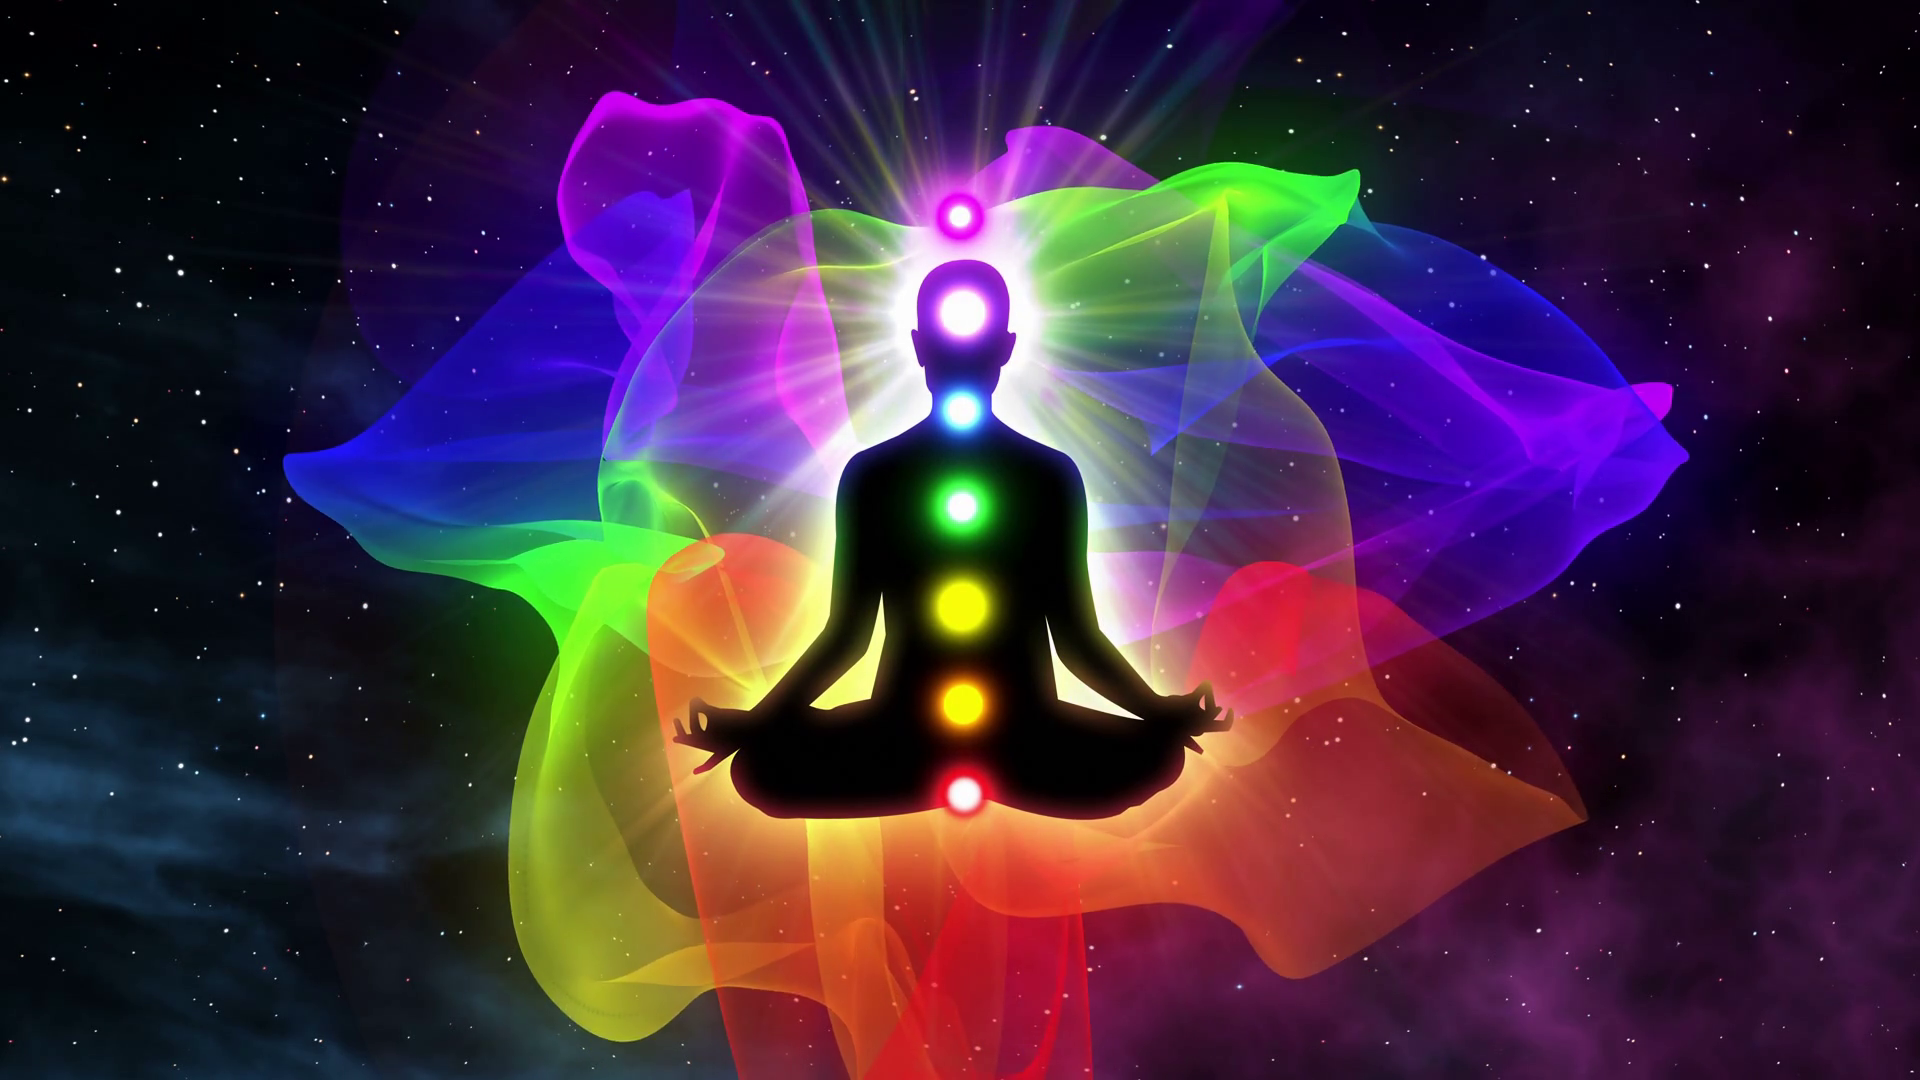 Chakras are Entry Gates of the Universal life energy